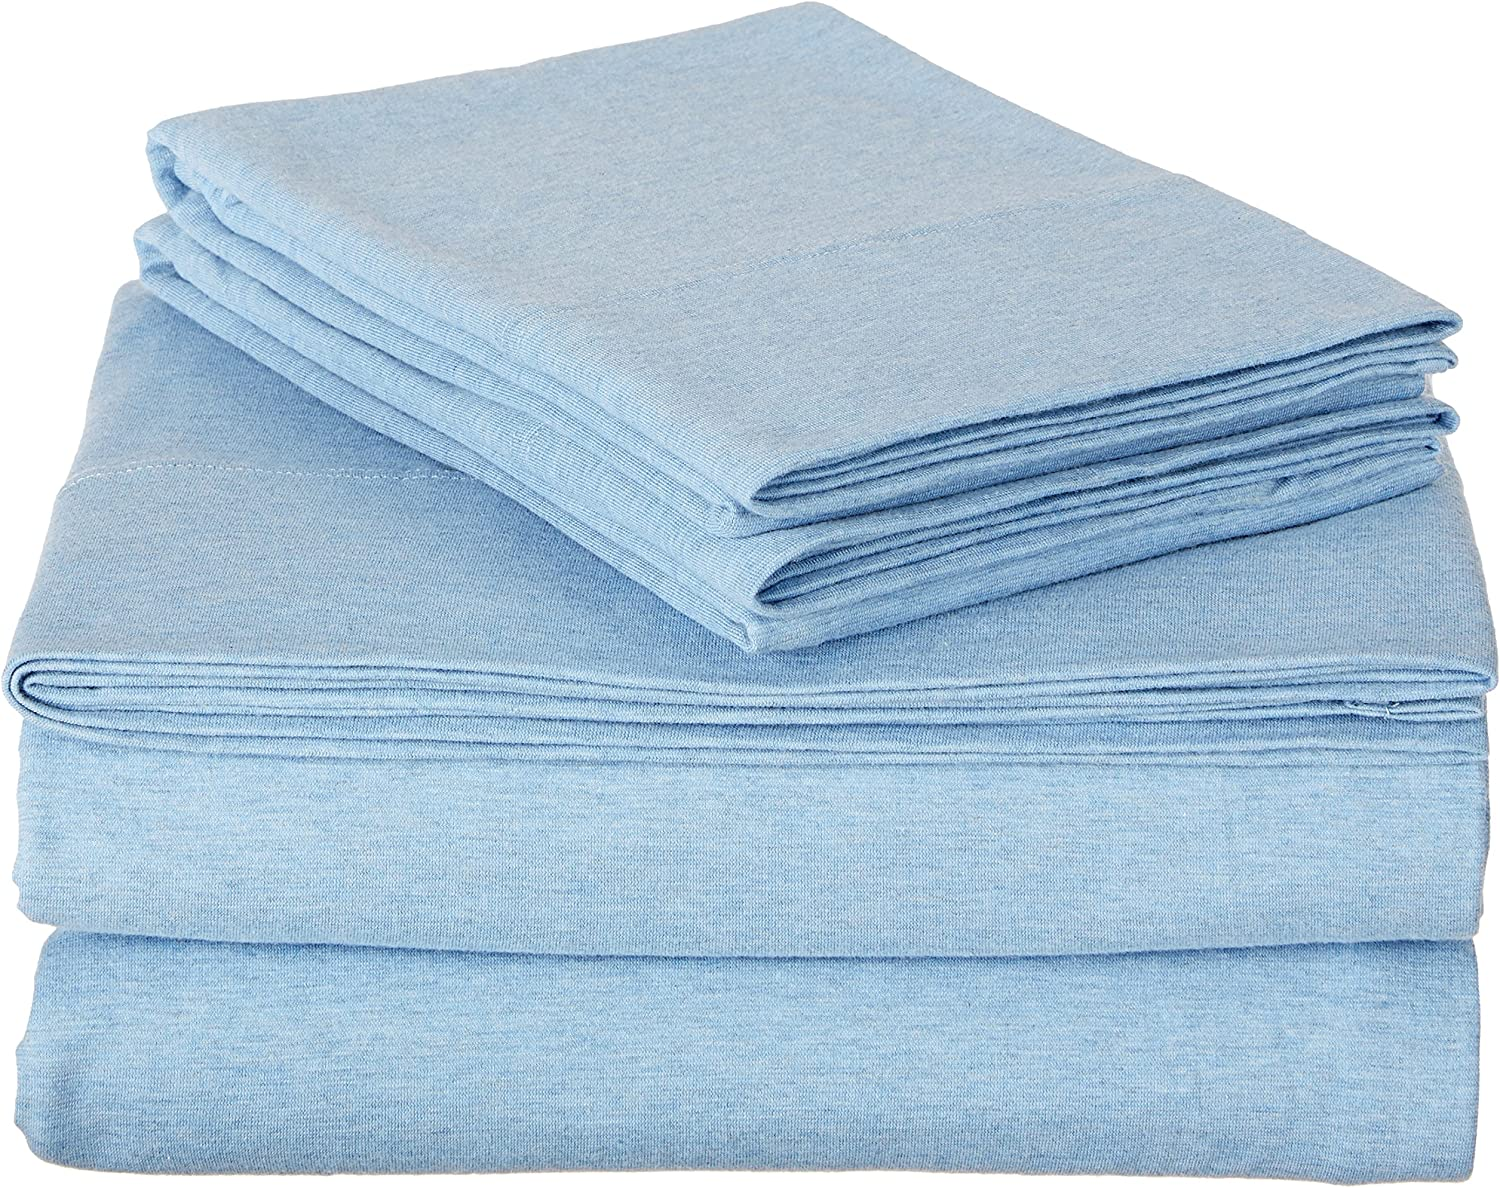 AmazonBasics Heather Cotton Jersey Bed Sheet Set - Queen, Sky Blue